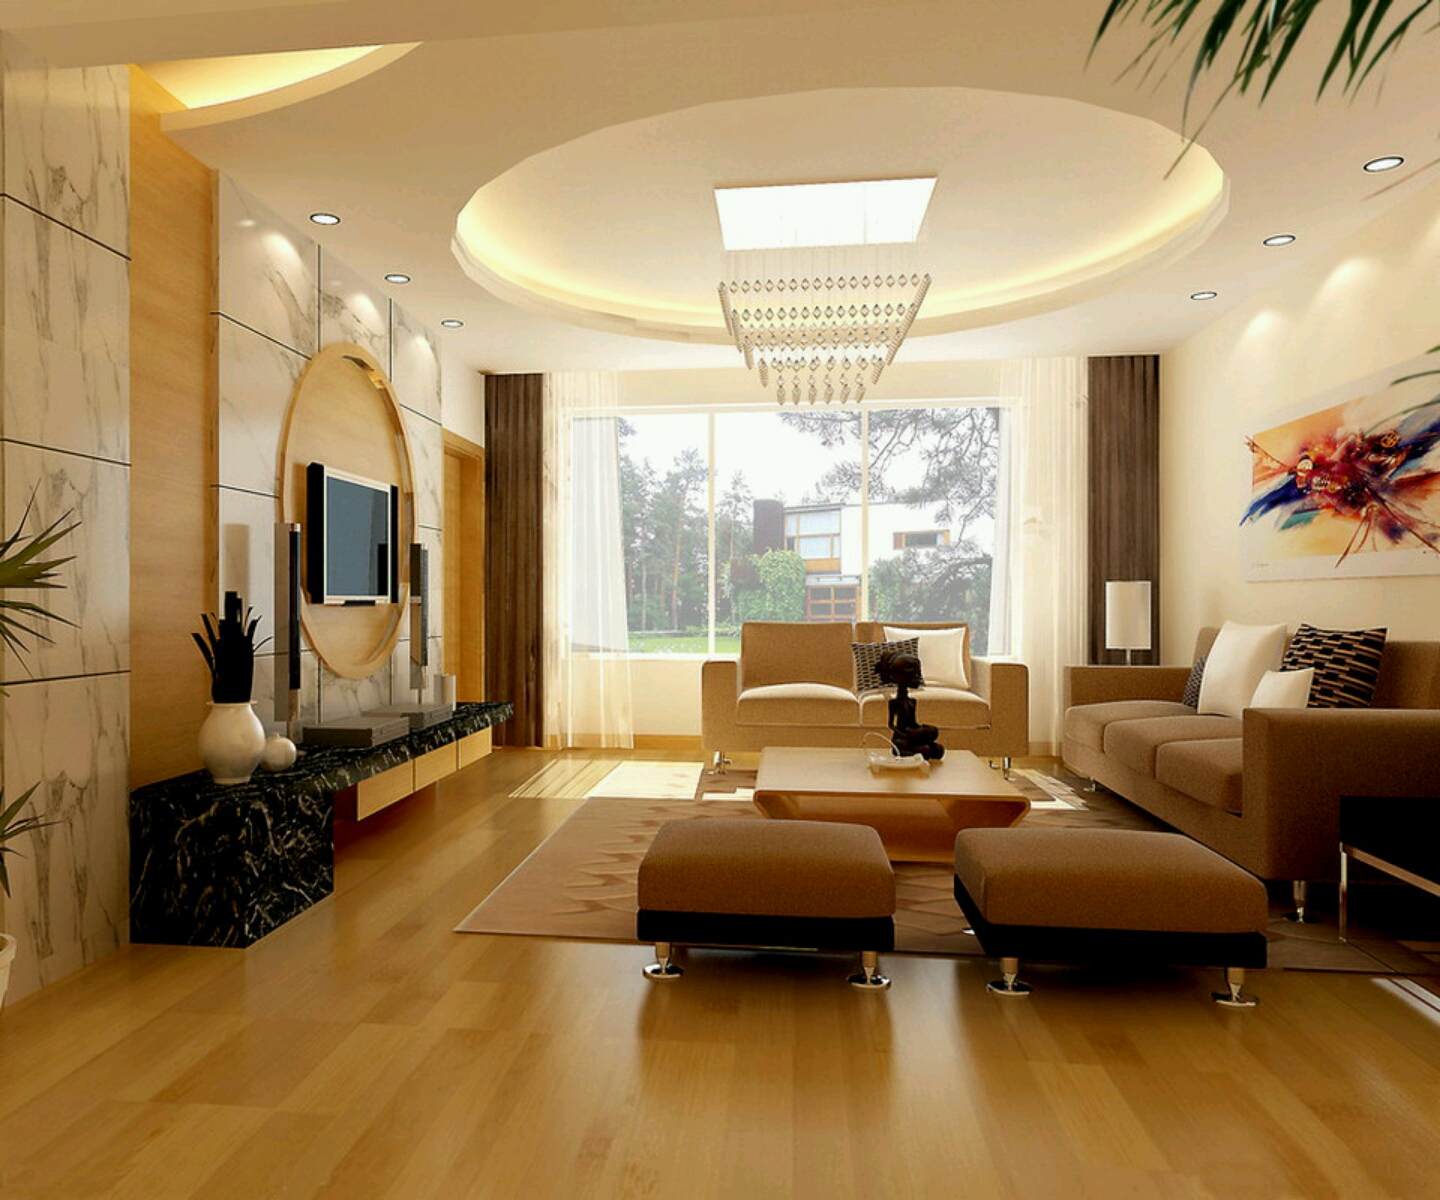 Modern interior decoration living rooms ceiling designs for Sitting room layout ideas